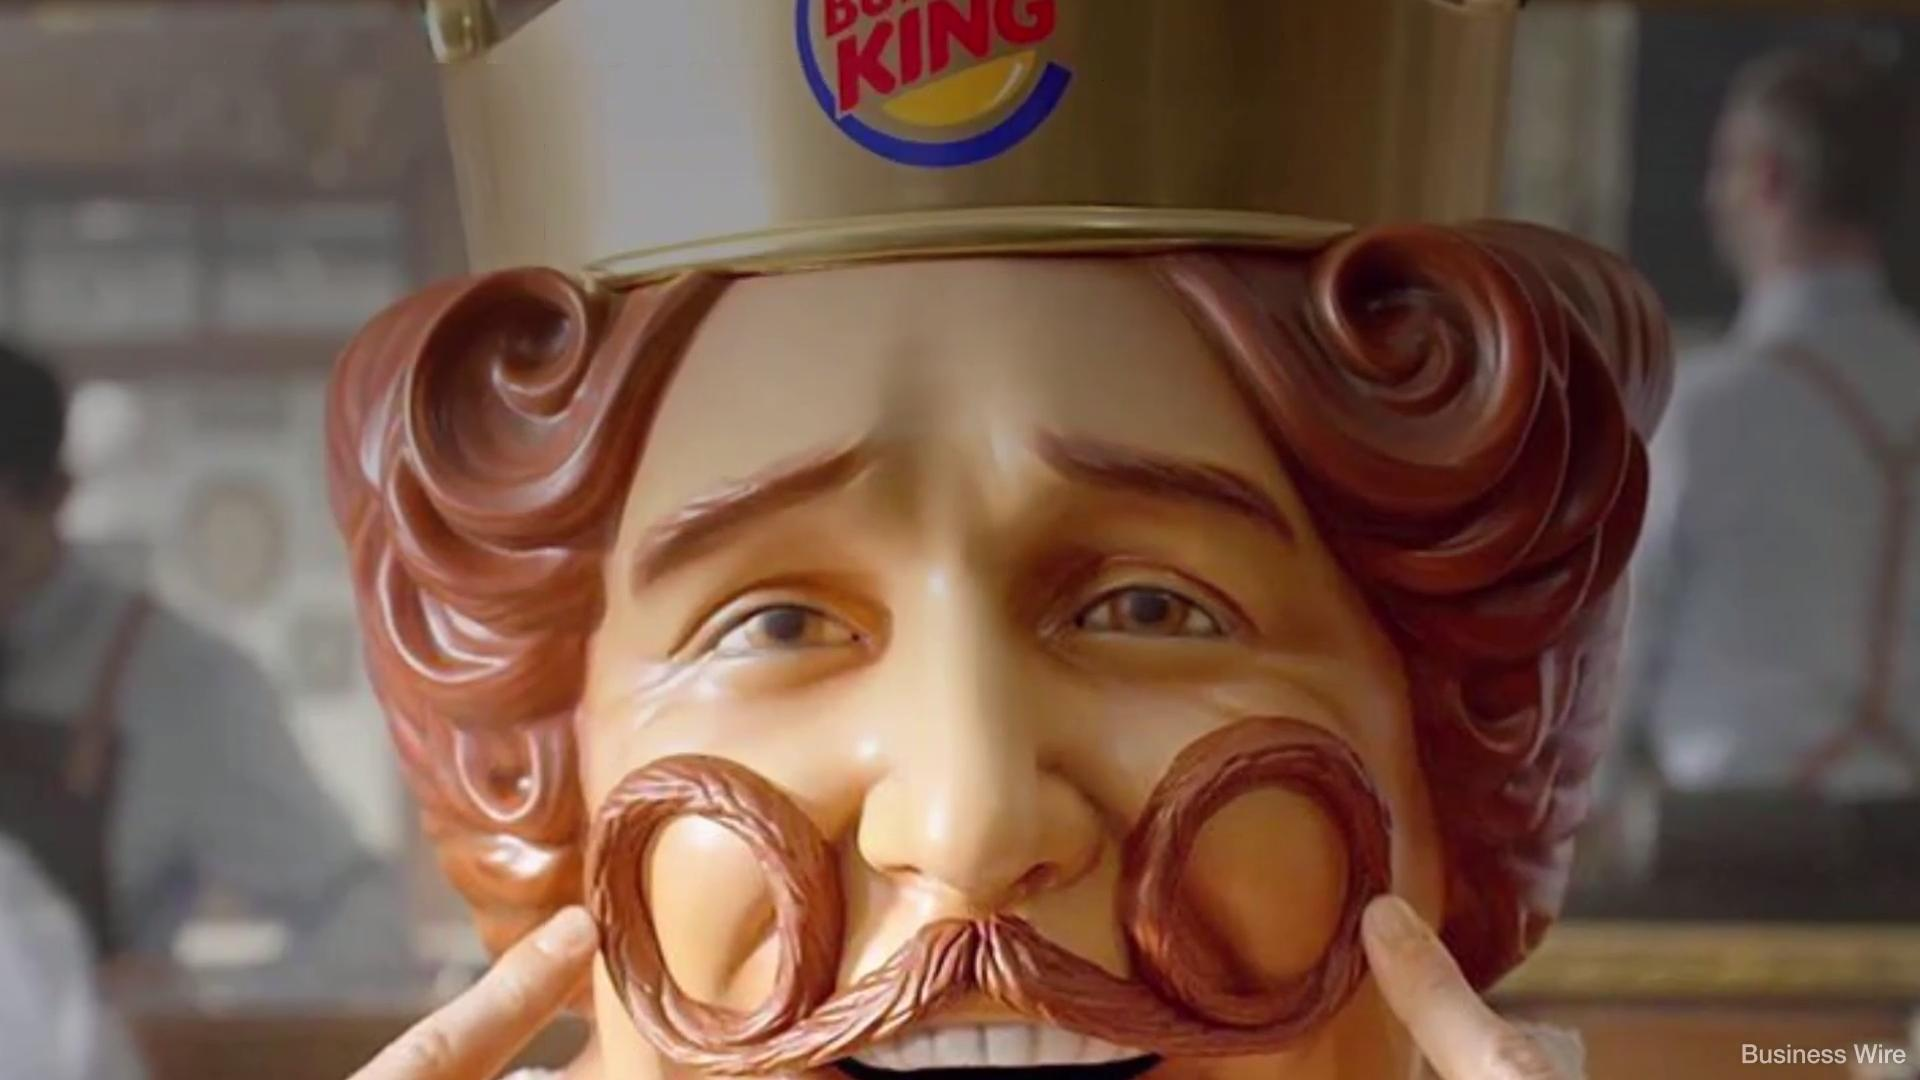 Why Did the Burger King King Just Shave His Royal Beard?